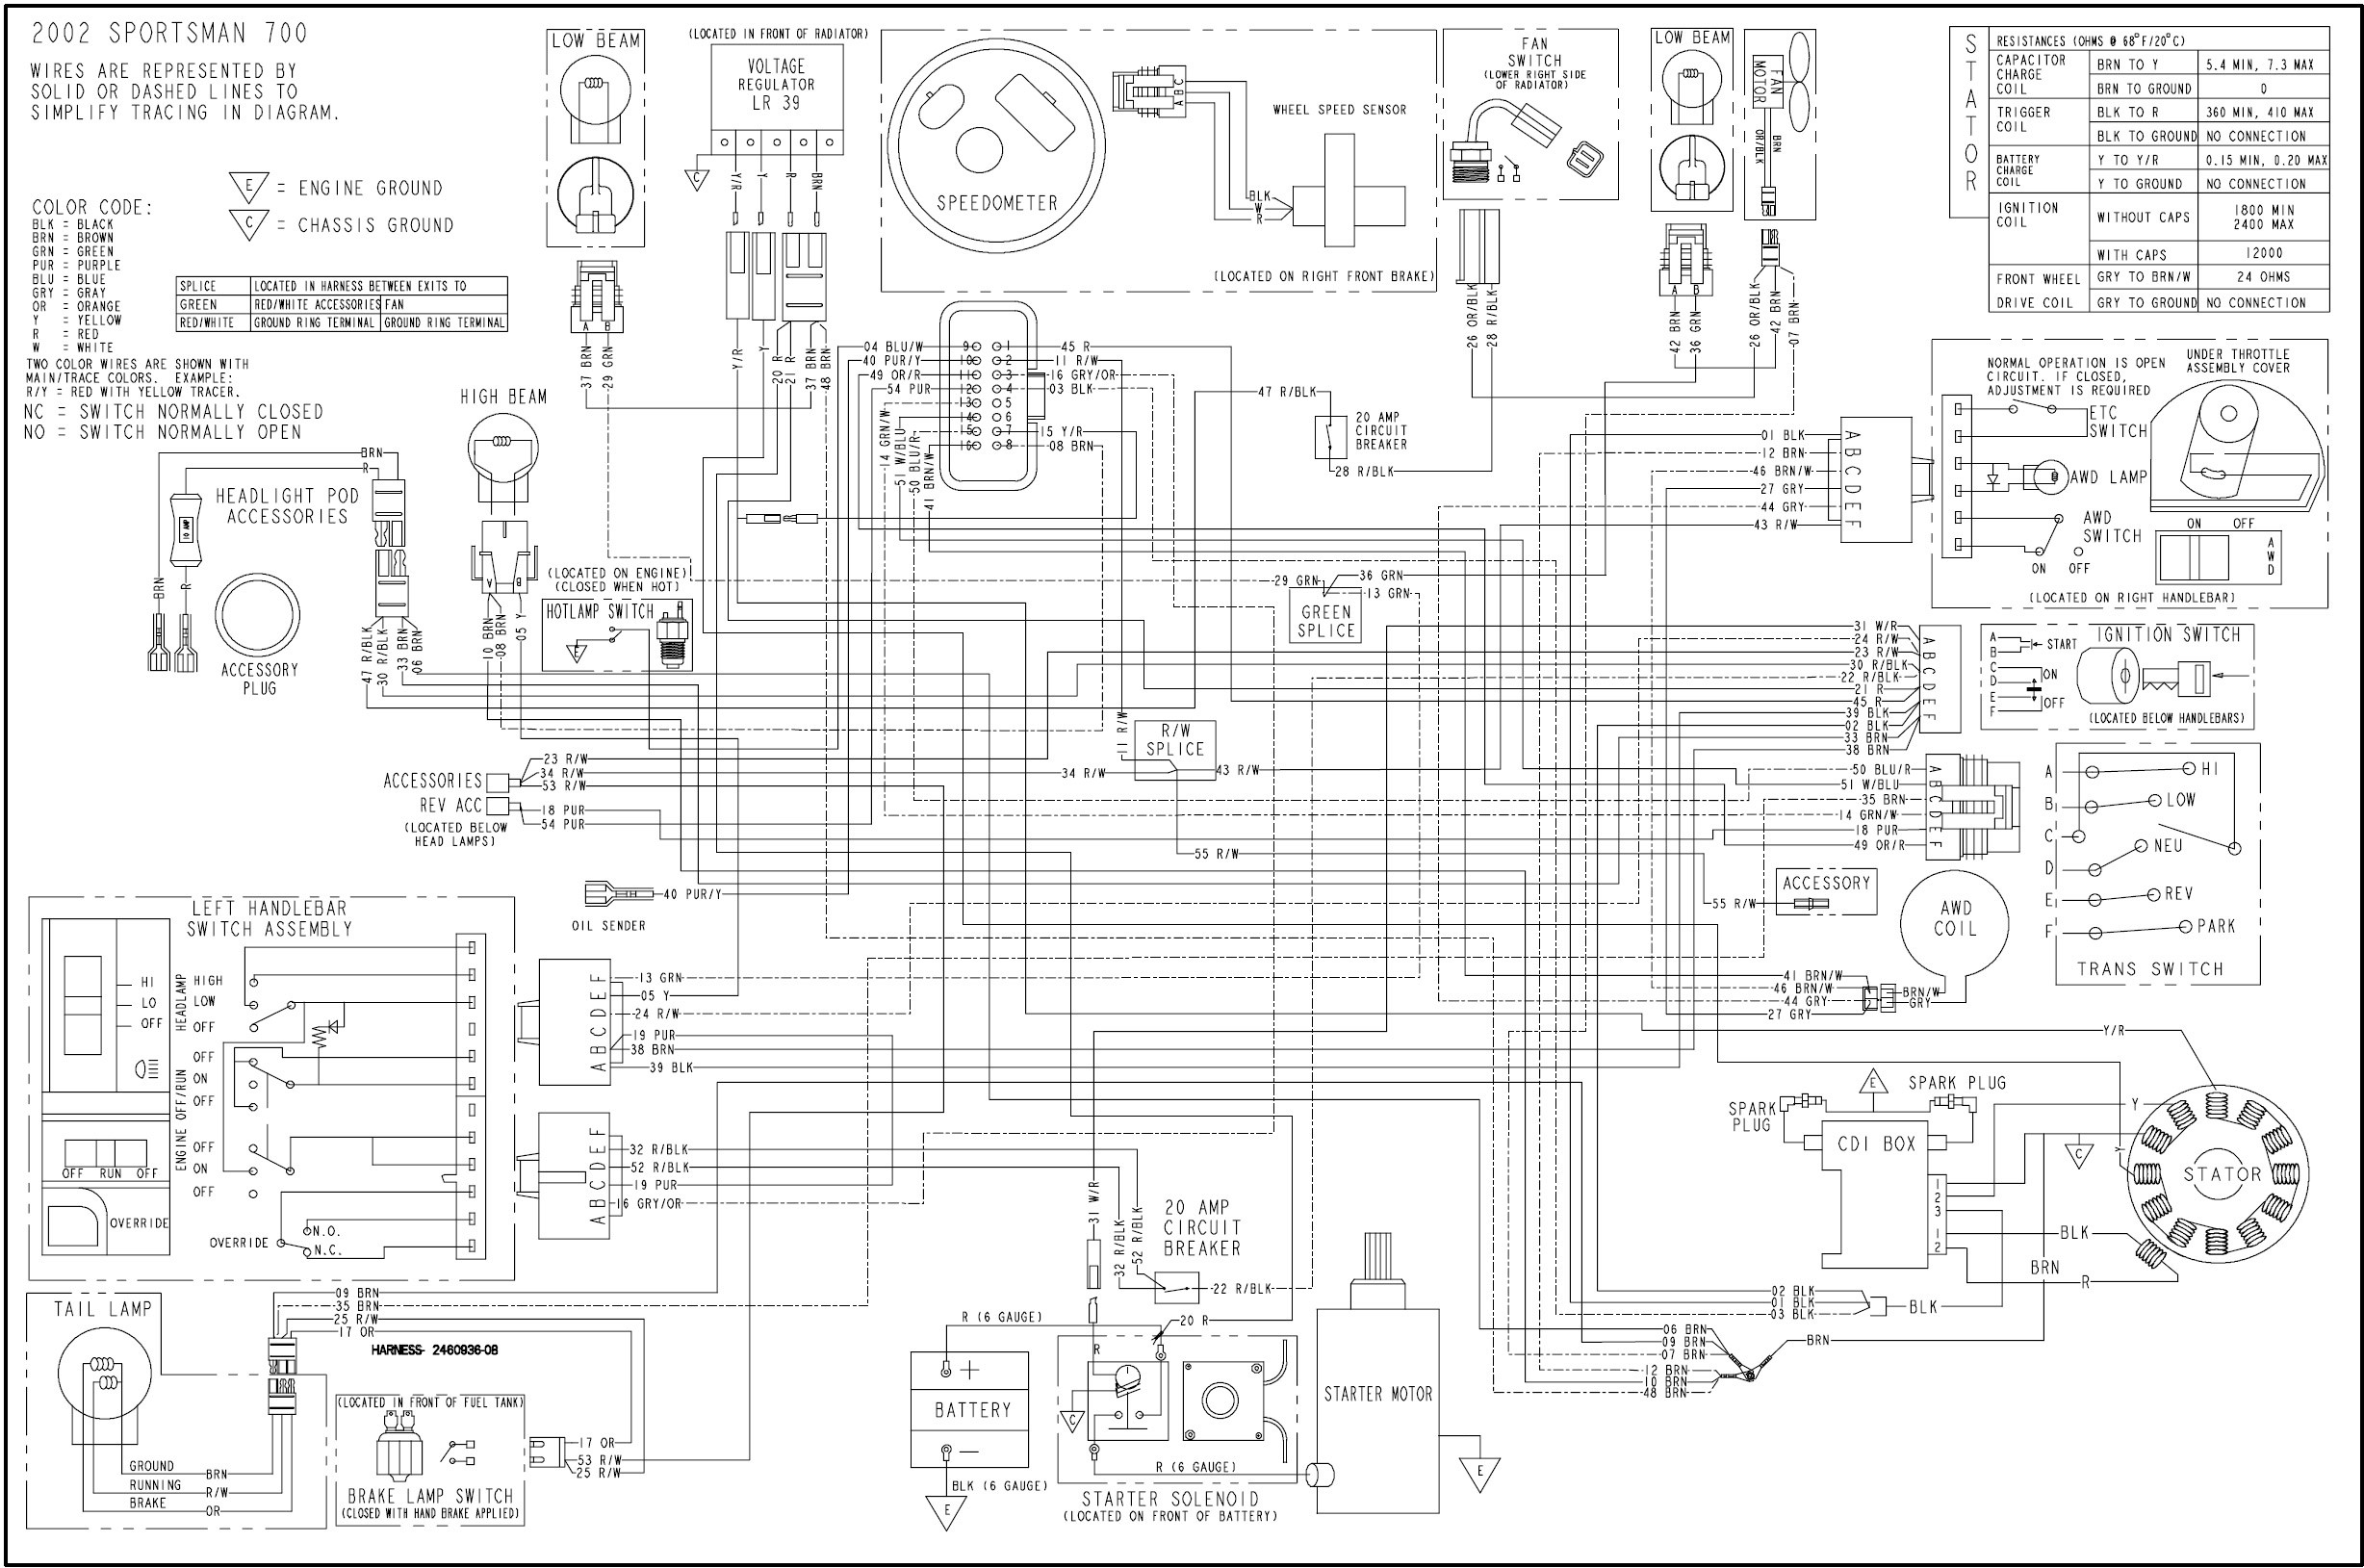 Wiring Diagram 1995 Polaris 300 4x4